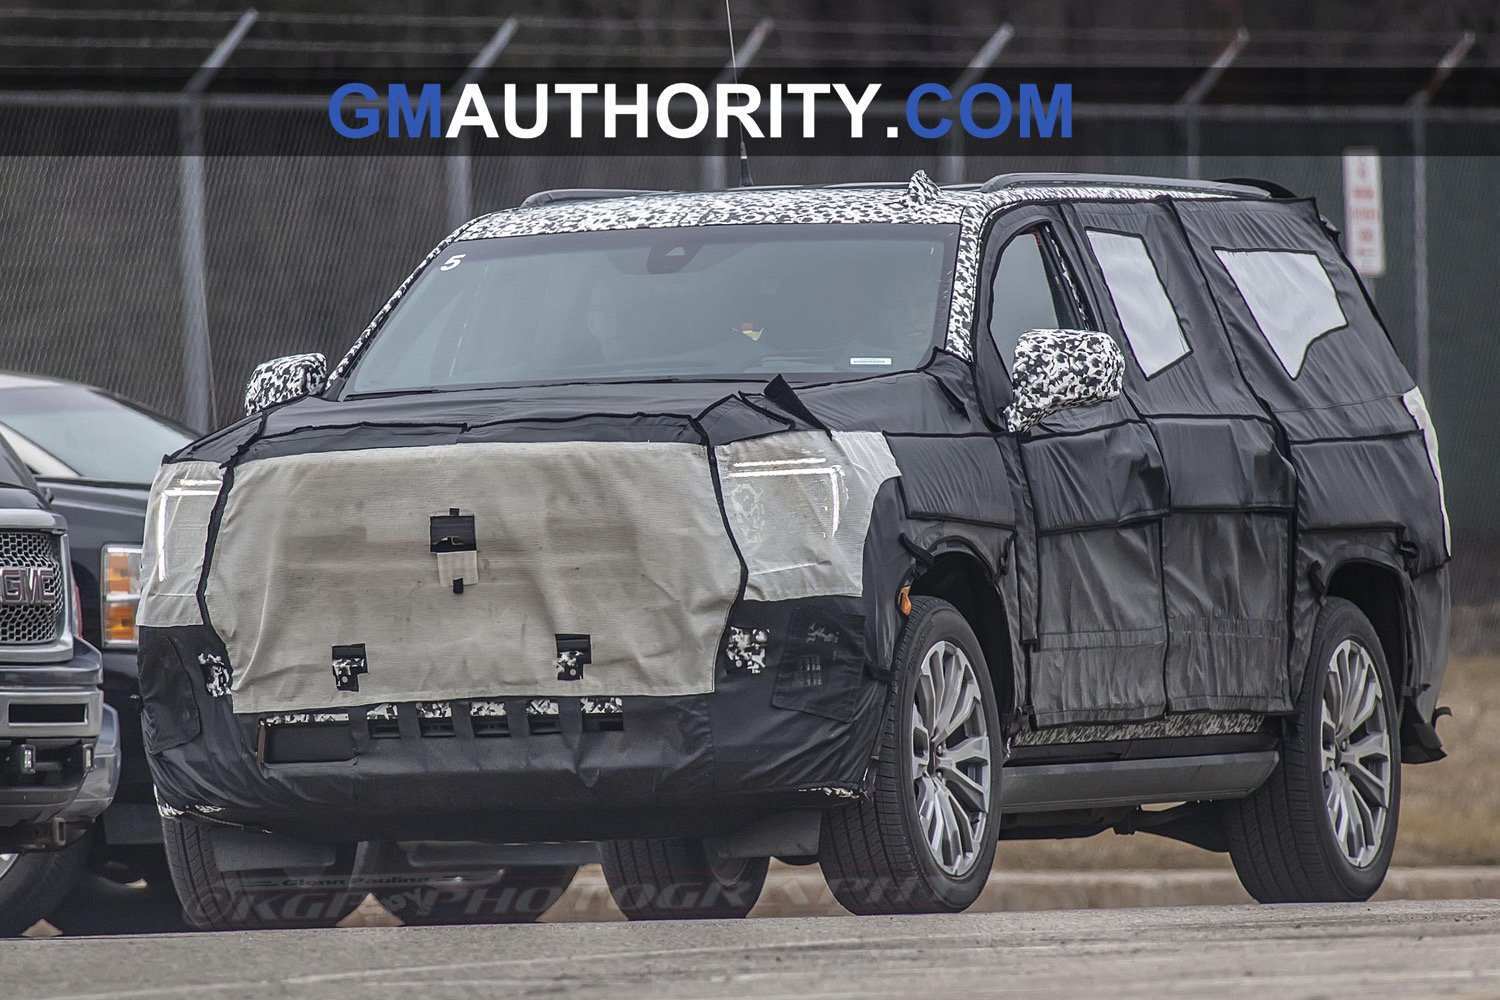 40 Gallery of When Will 2020 Gmc Yukon Be Released Photos with When Will 2020 Gmc Yukon Be Released